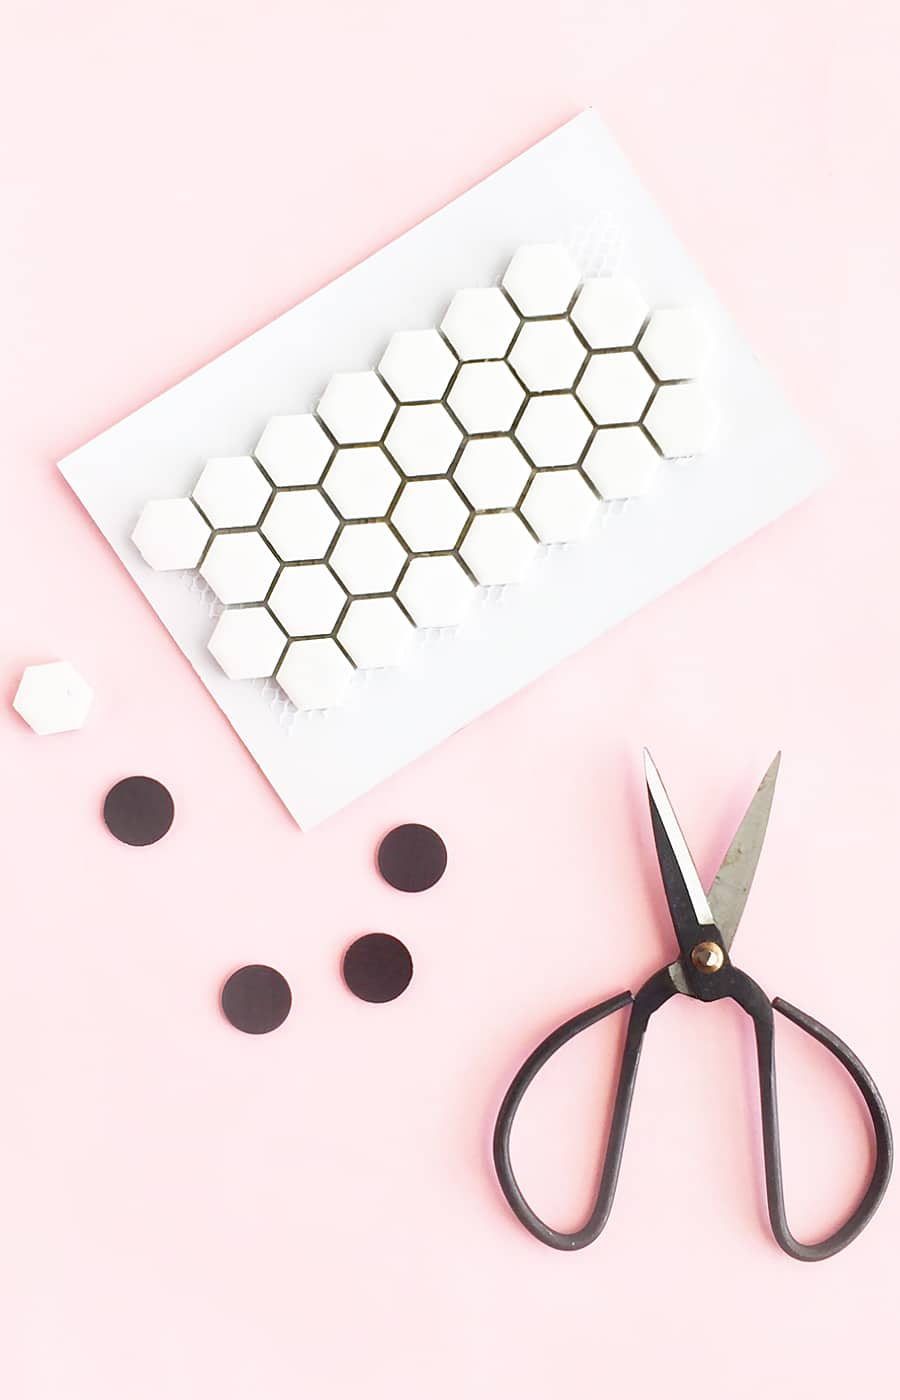 DIY Patterned Magnets From Leftover Or Sample Tiles - take your extra tiles and make pretty patterned magnets with them. Click through for the tutorial!